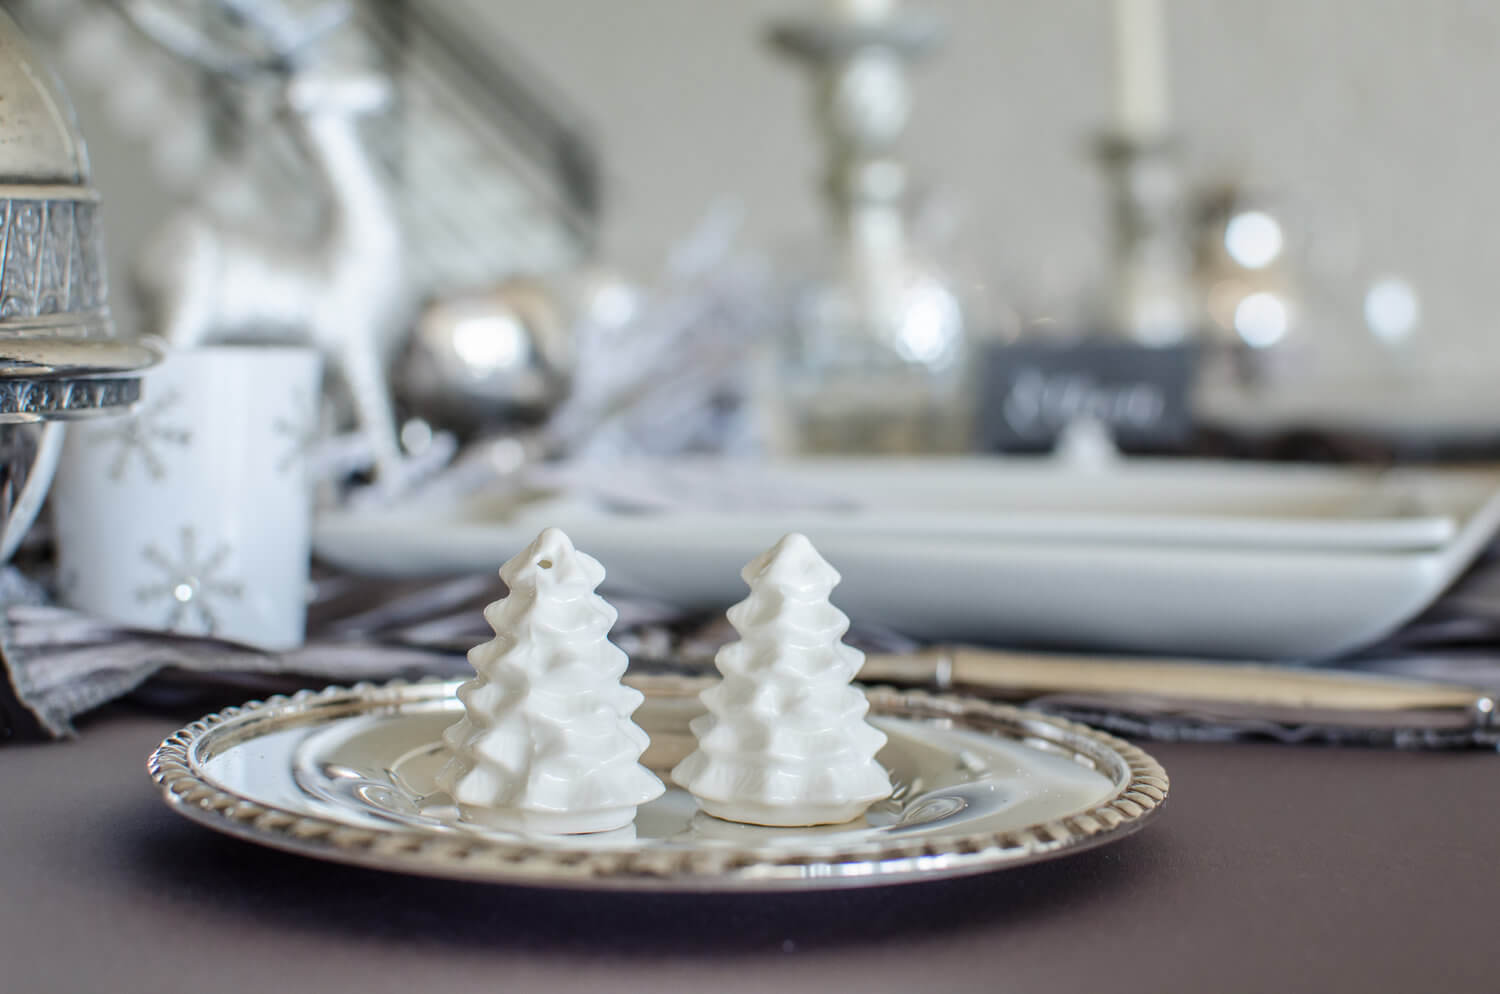 The cutest white tree salt and pepper shakers for a winter themed party. See more ideas from this Winter Wonderland themed Bridal Shower Inspiration created by Mint Event Design www.minteventdesign.com #winterweddingideas #weddingwedding #bridalshowerideas #winterwonderland